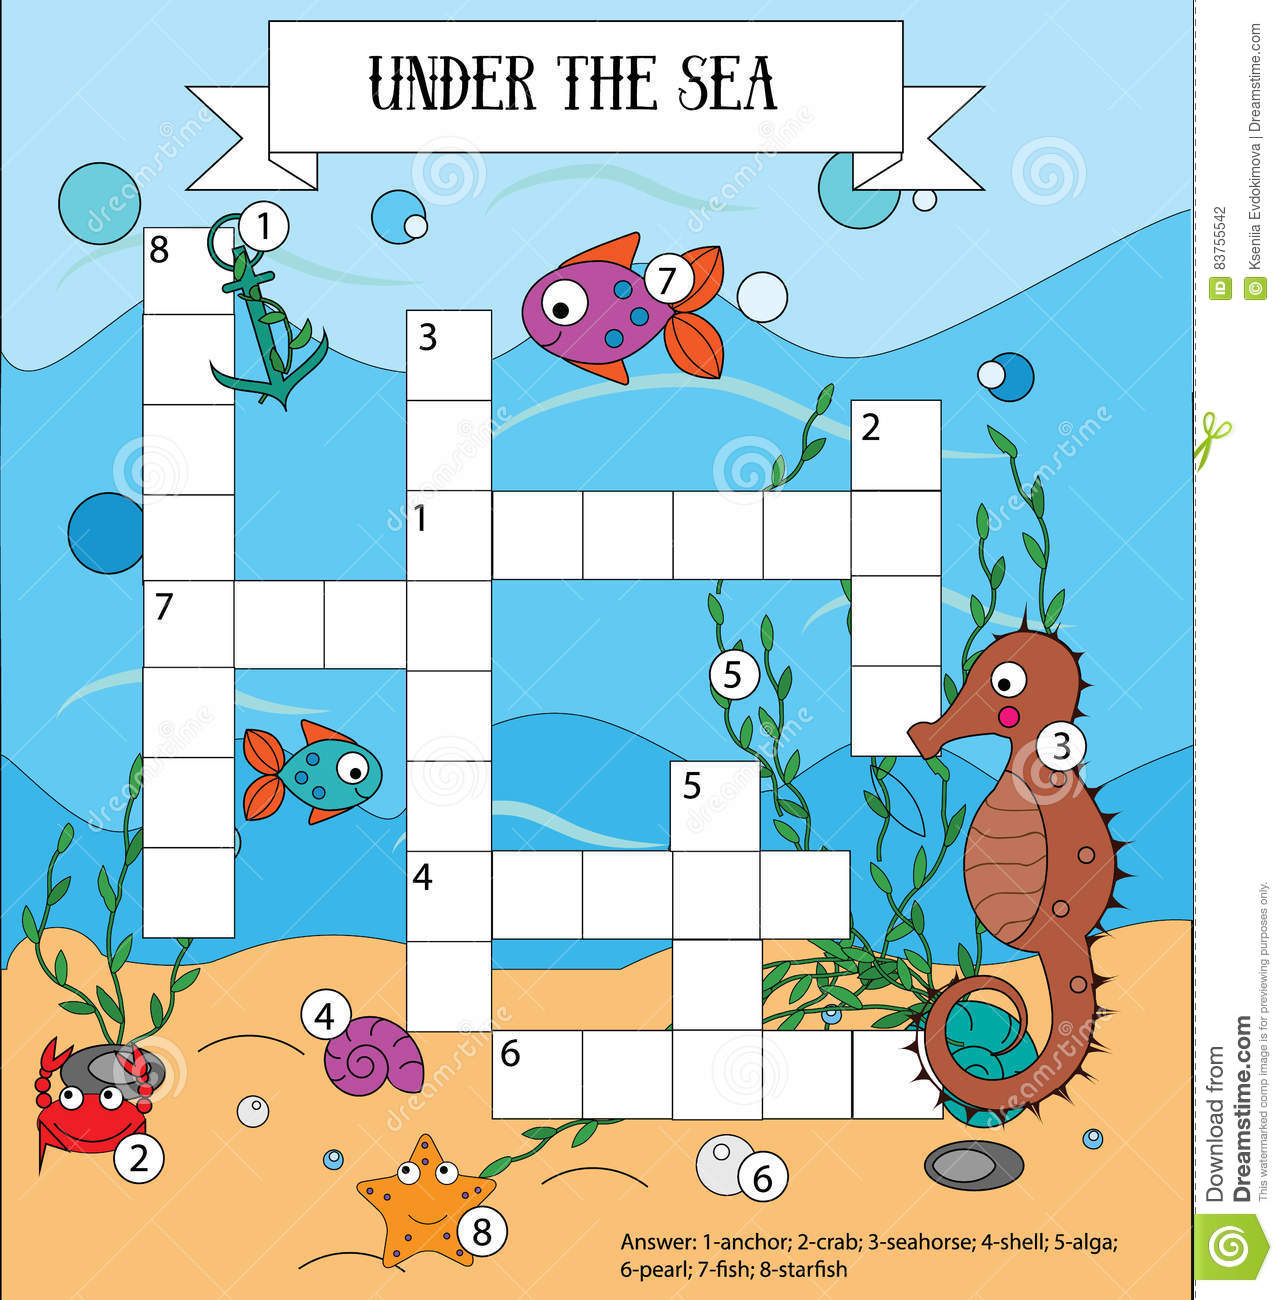 Crossword Educational Children Game With Answer Sea